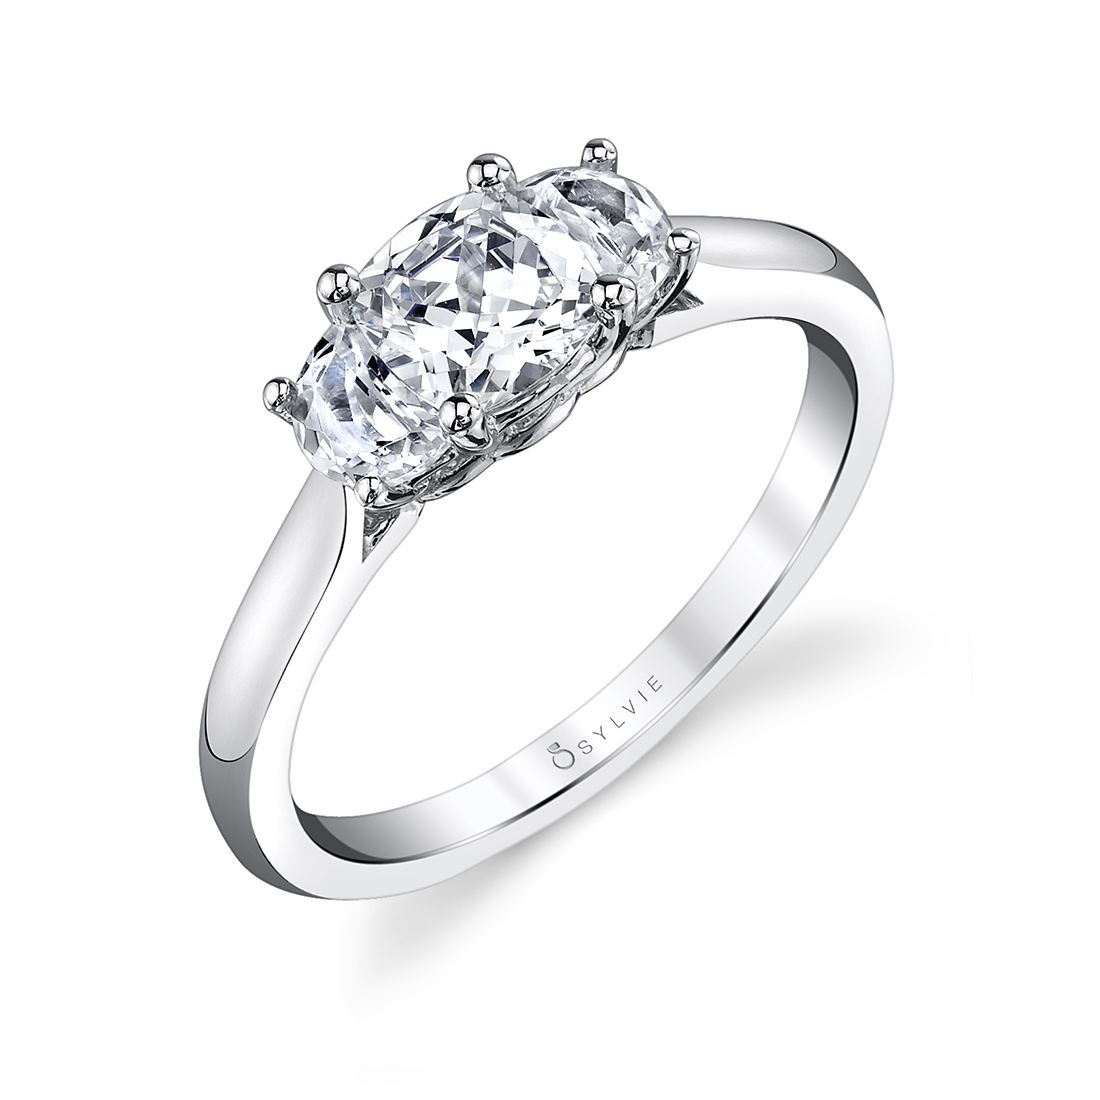 profile image of a three stone engagement ring